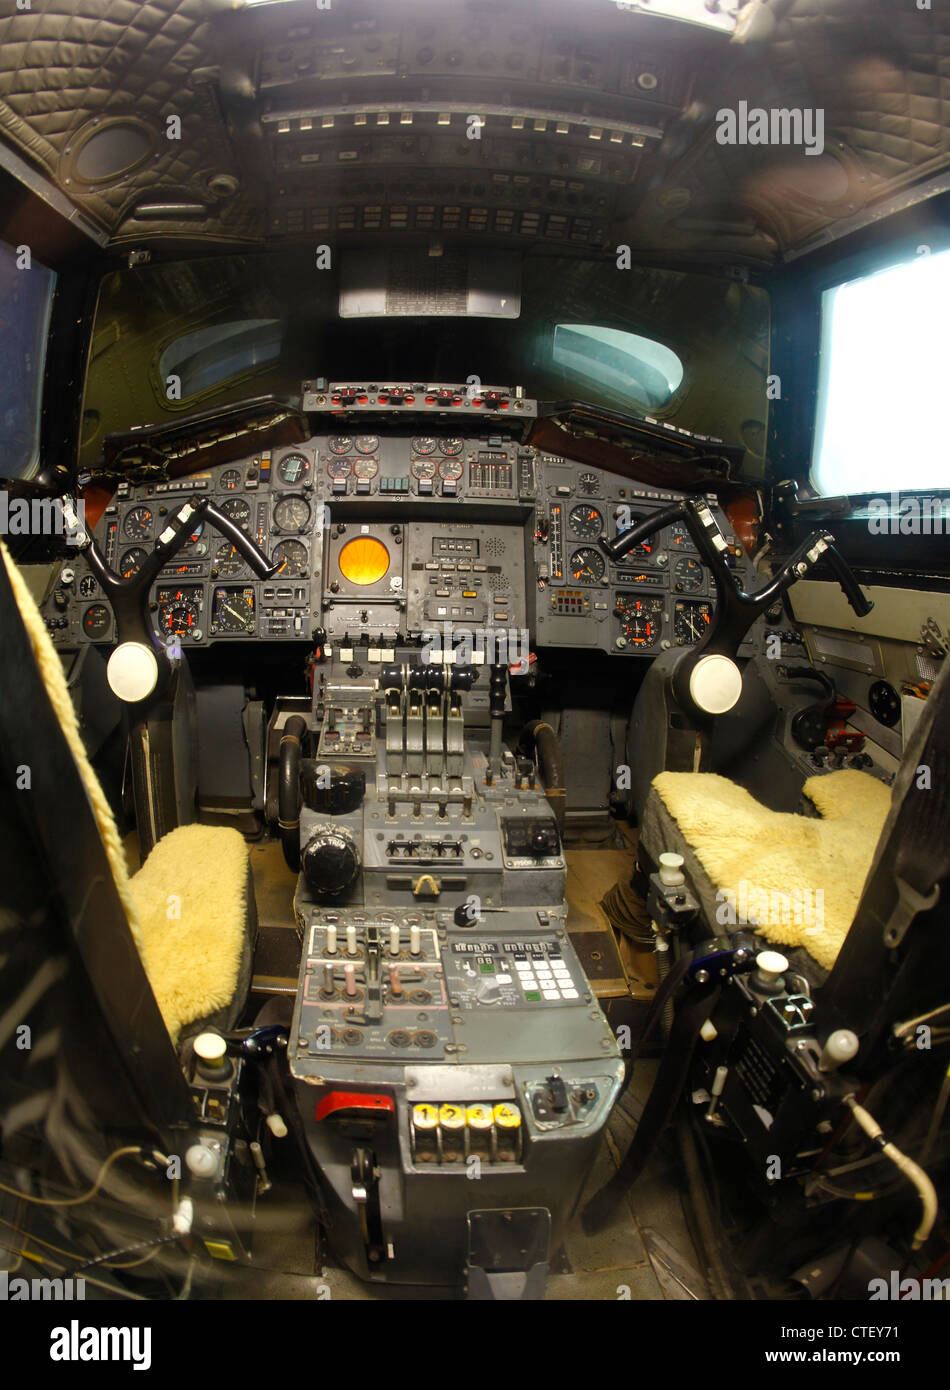 Concorde cockpit of the second test concorde - Stock Image